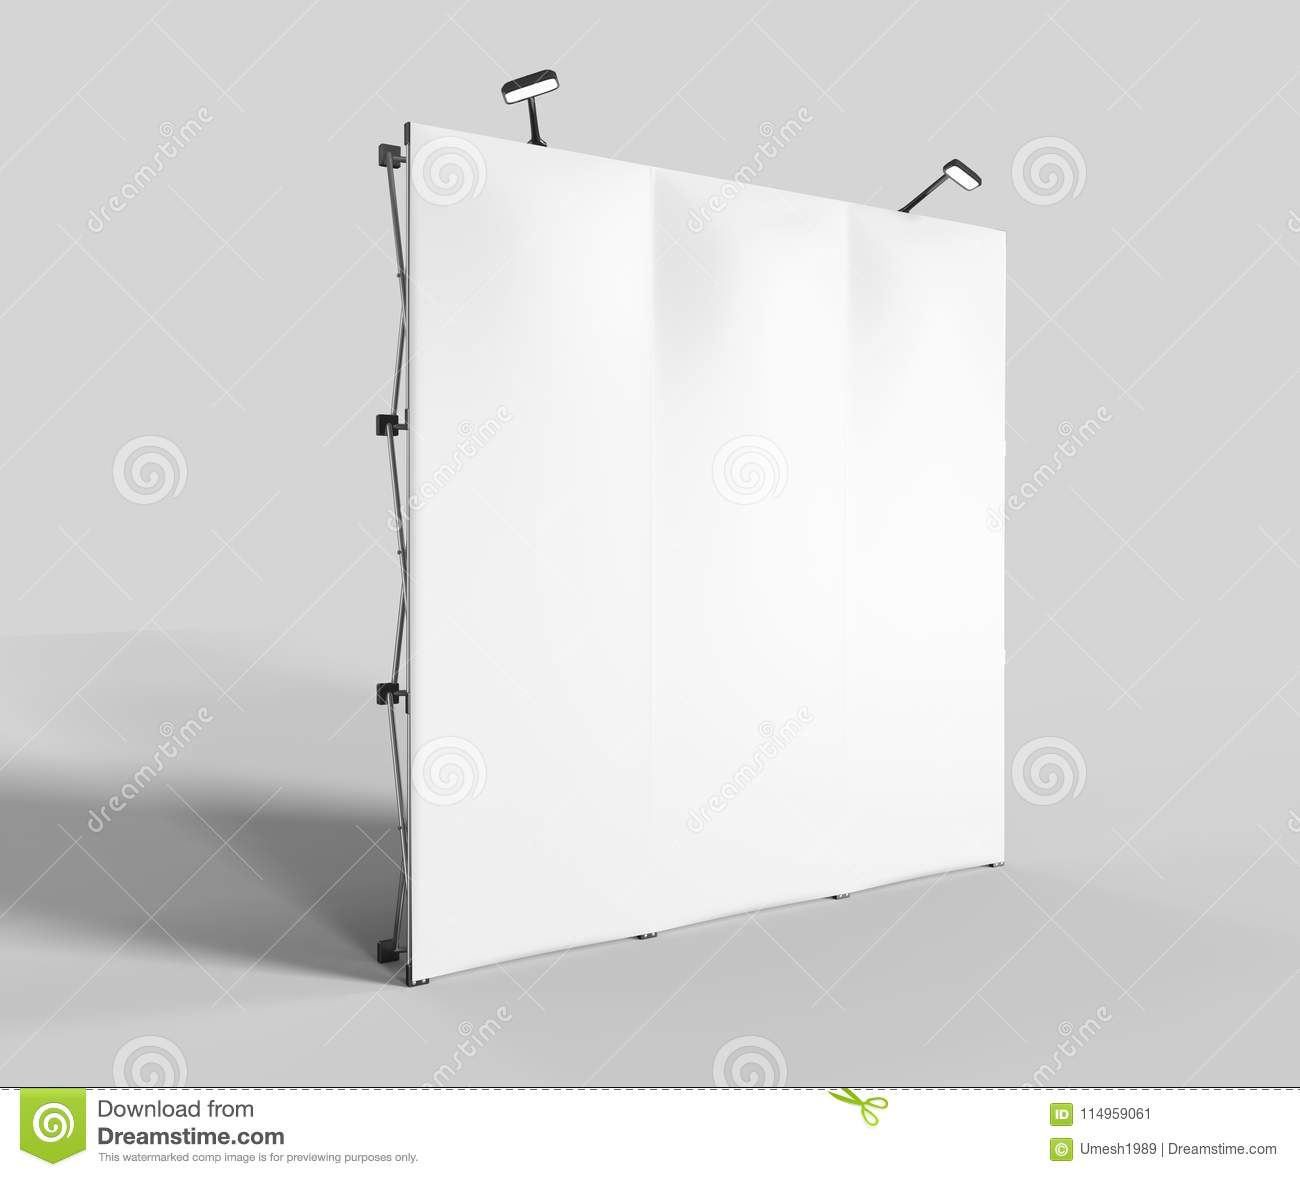 Exhibition Tension Fabric Display Banner Stand Backdrop for trade show advertising stand with LED OR Halogen Light with standees a